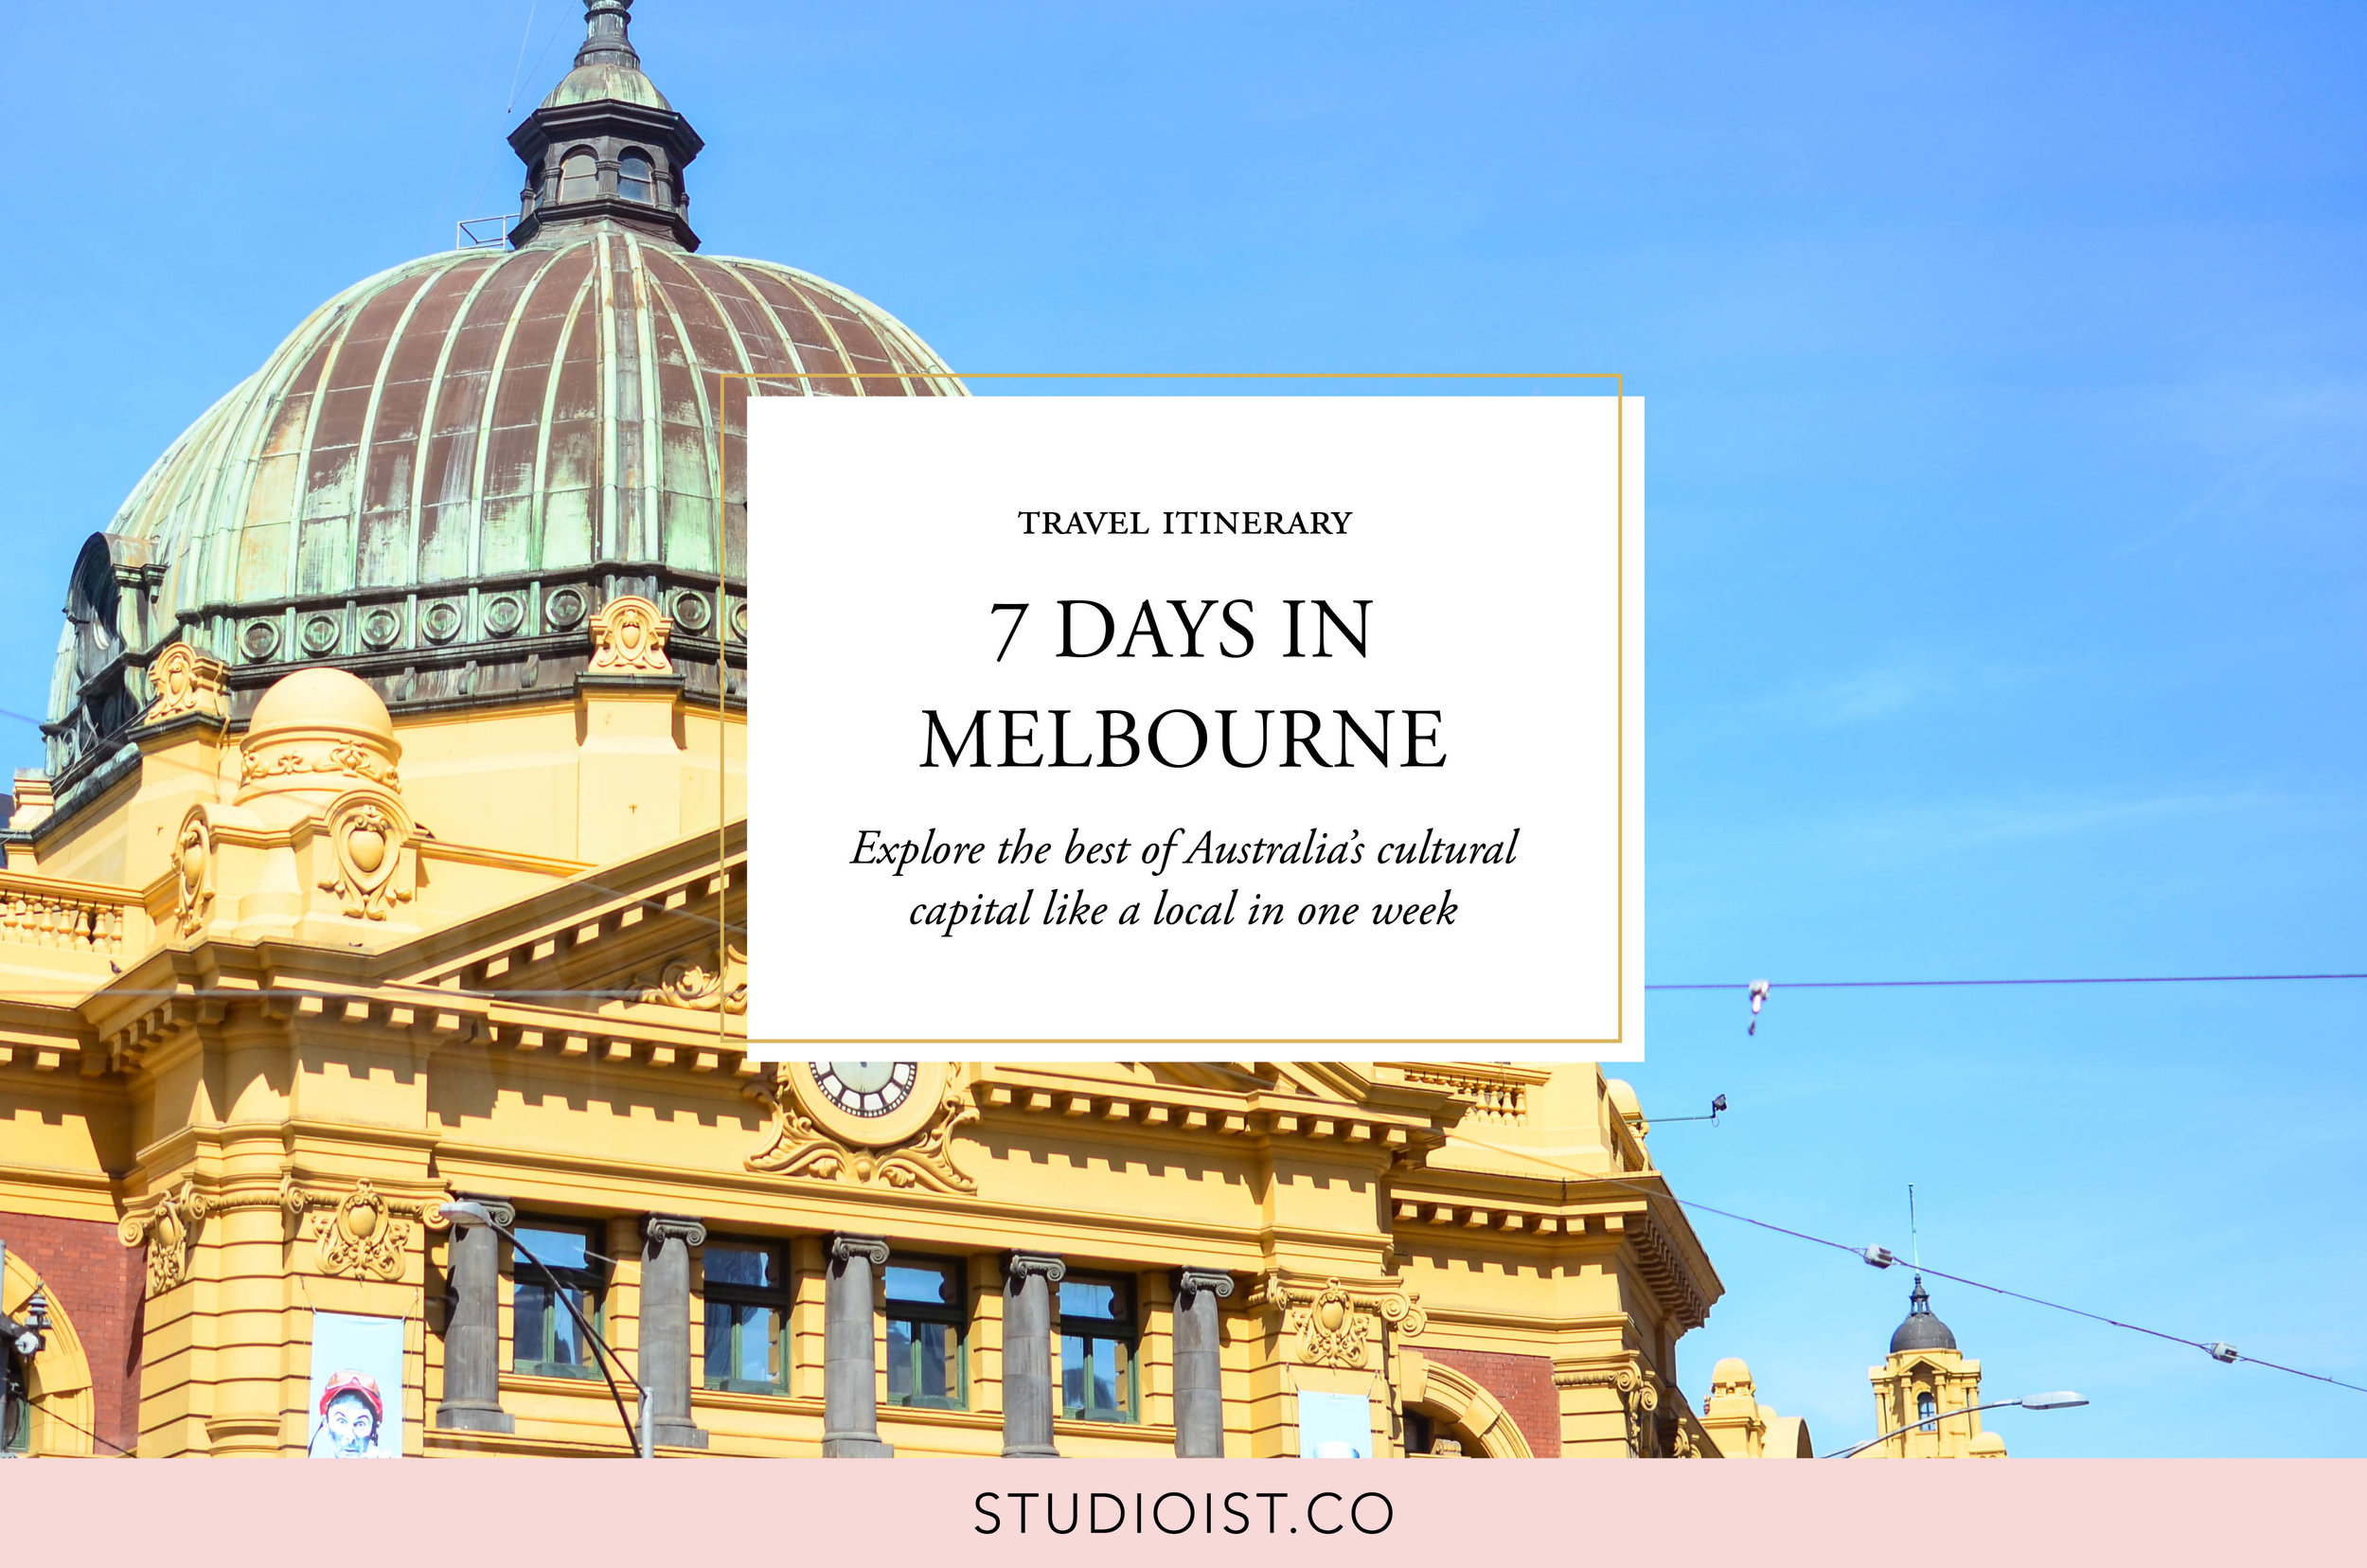 Studioist_Food Cover_Melb travel itinerary-small.jpg